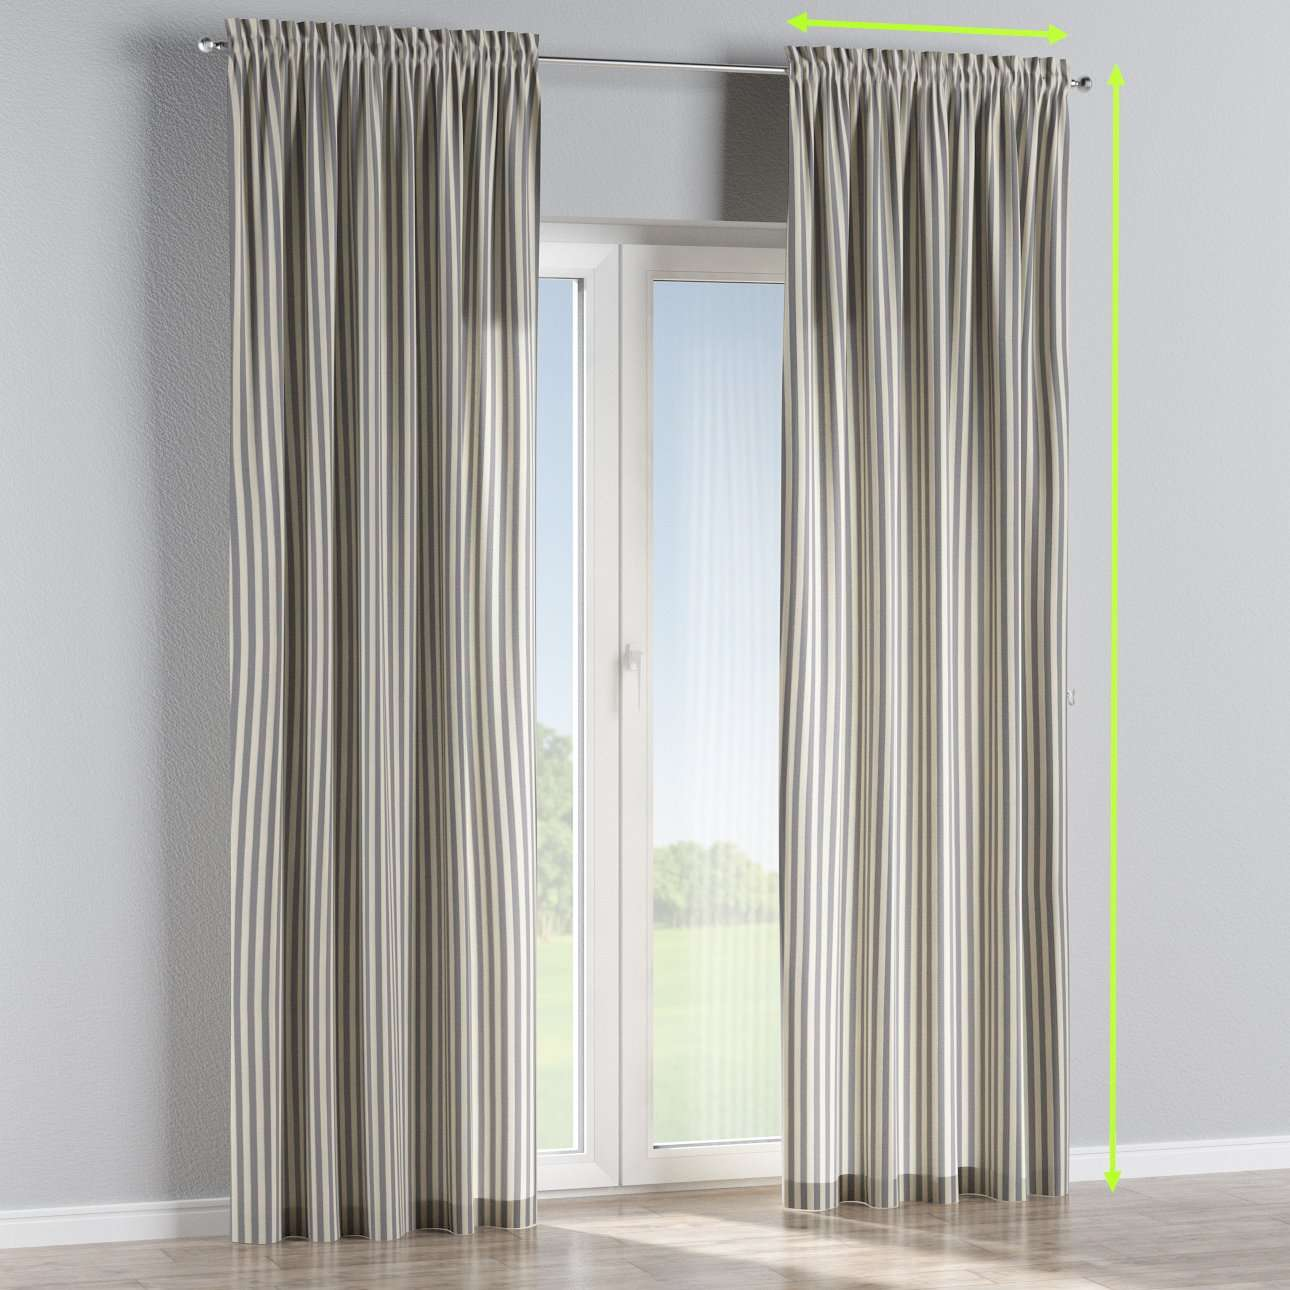 Slot and frill lined curtains in collection Quadro, fabric: 136-02